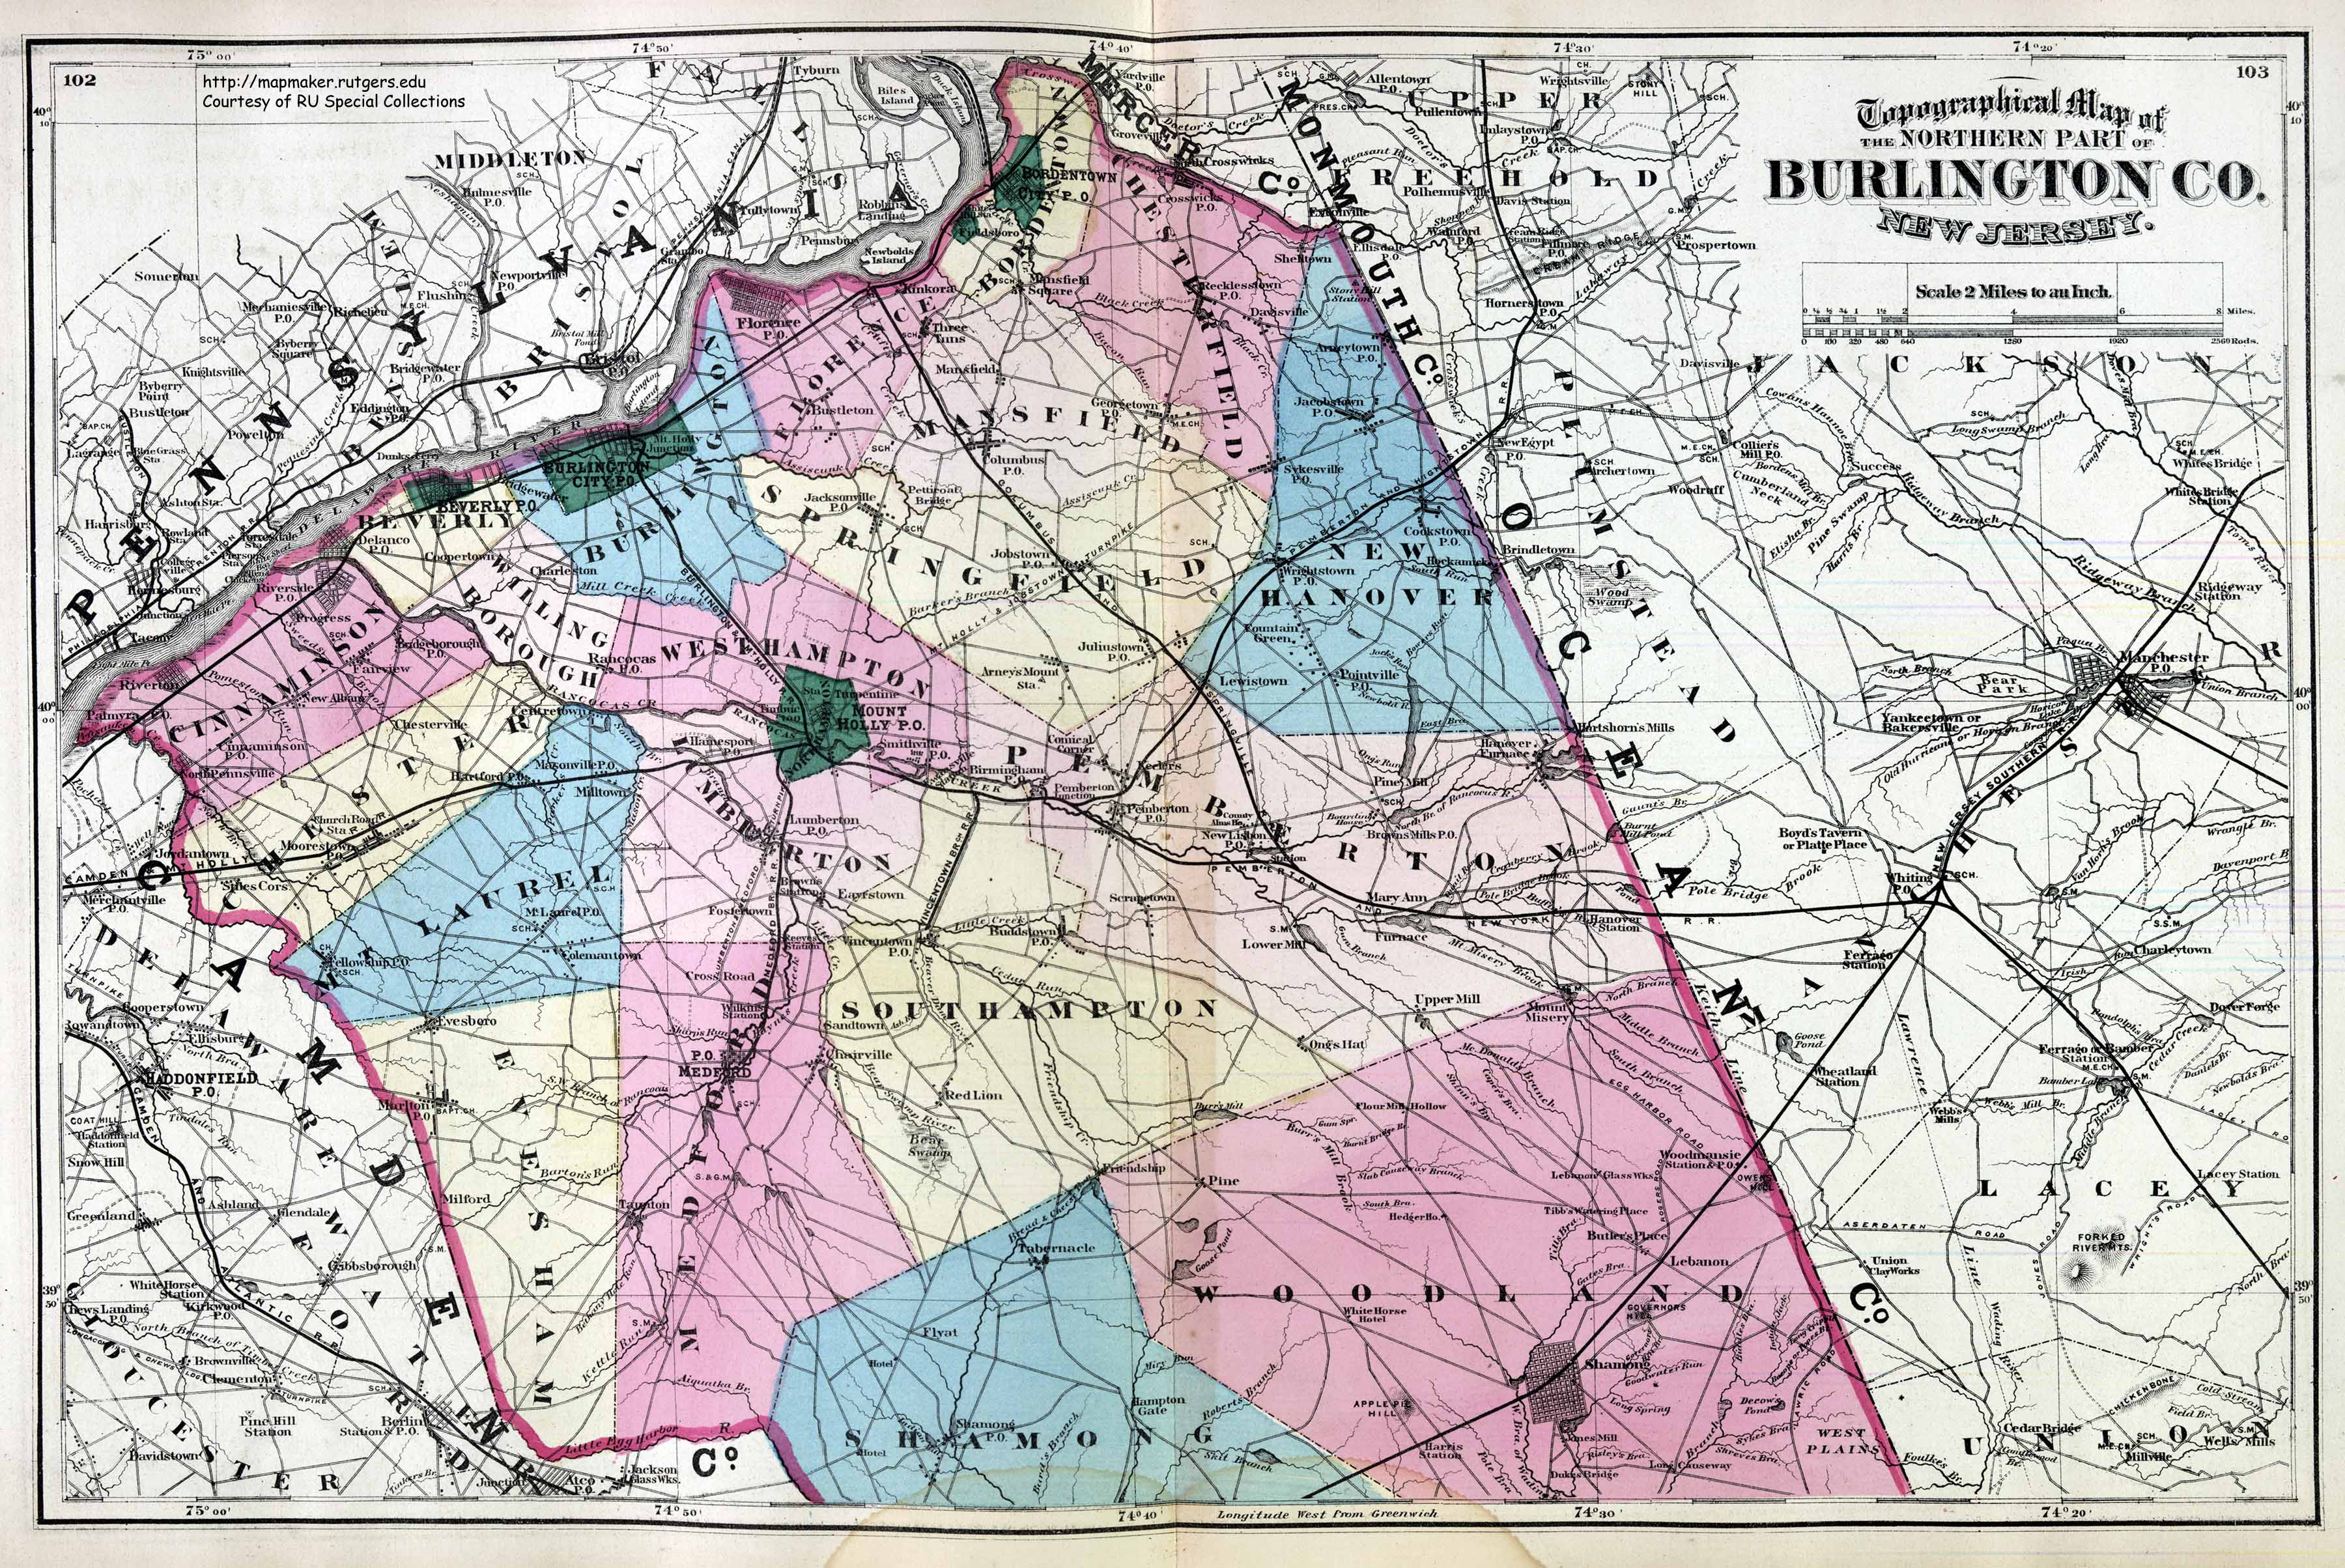 map of new jersey towns with Burlconorth1872 on Citymap together with Map Of Maryland Jkc9olqflrcHtvsWUL6XChwedDRFwr7vNoRPkmsu3Js furthermore Hunterdoncty1872 also Georgia Road Map With Cities And Towns in addition Map Of Staten Island Neighborhoods.